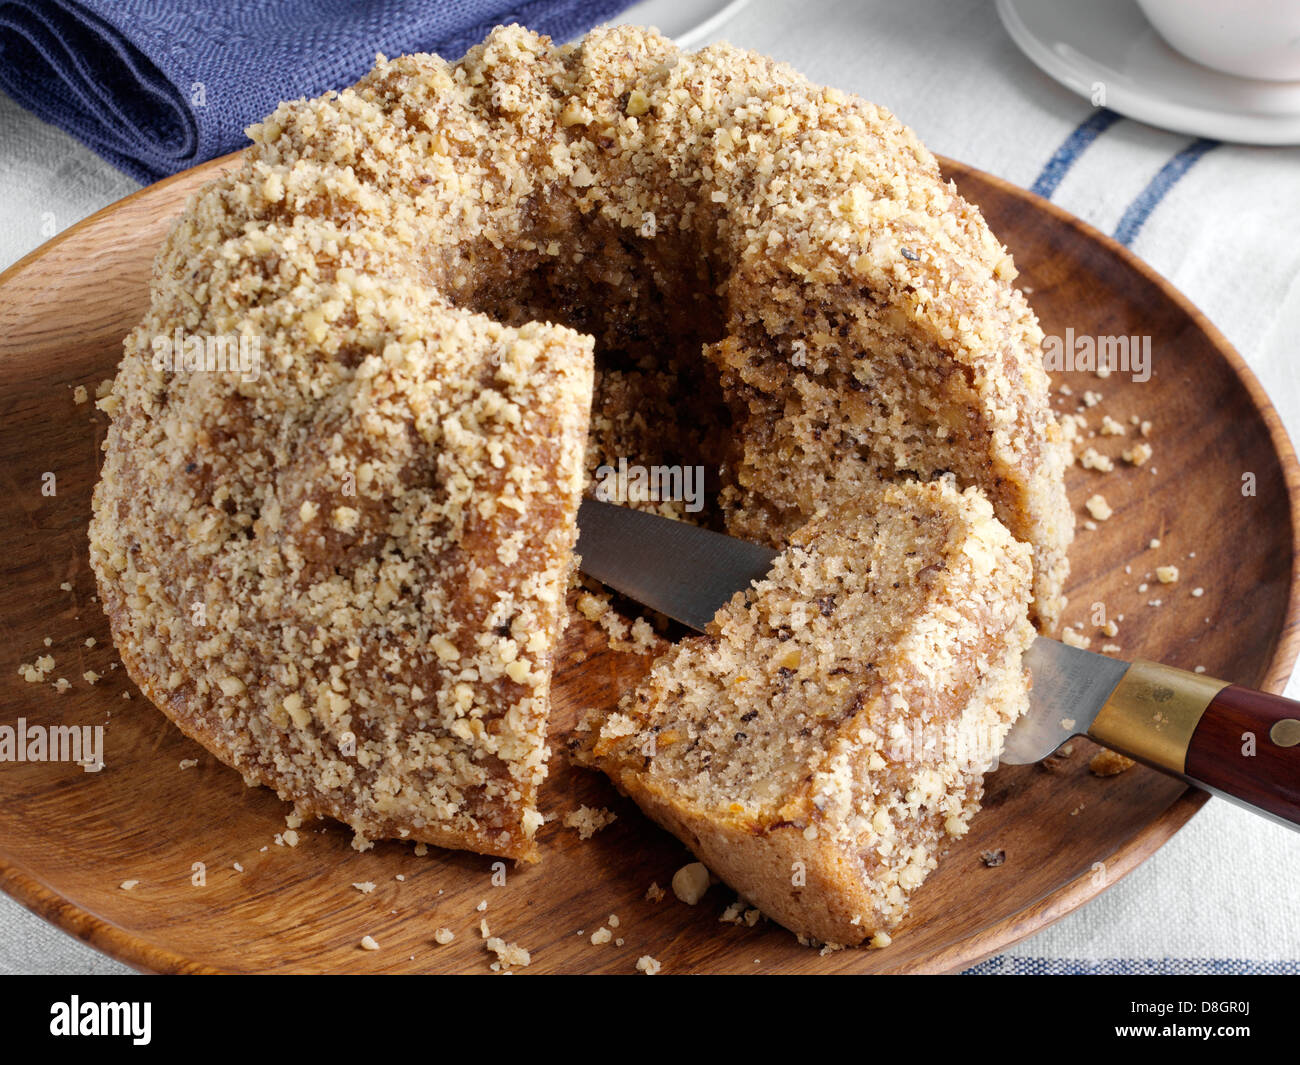 Orange walnut cake Stock Photo, Royalty Free Image: 56917634 - Alamy